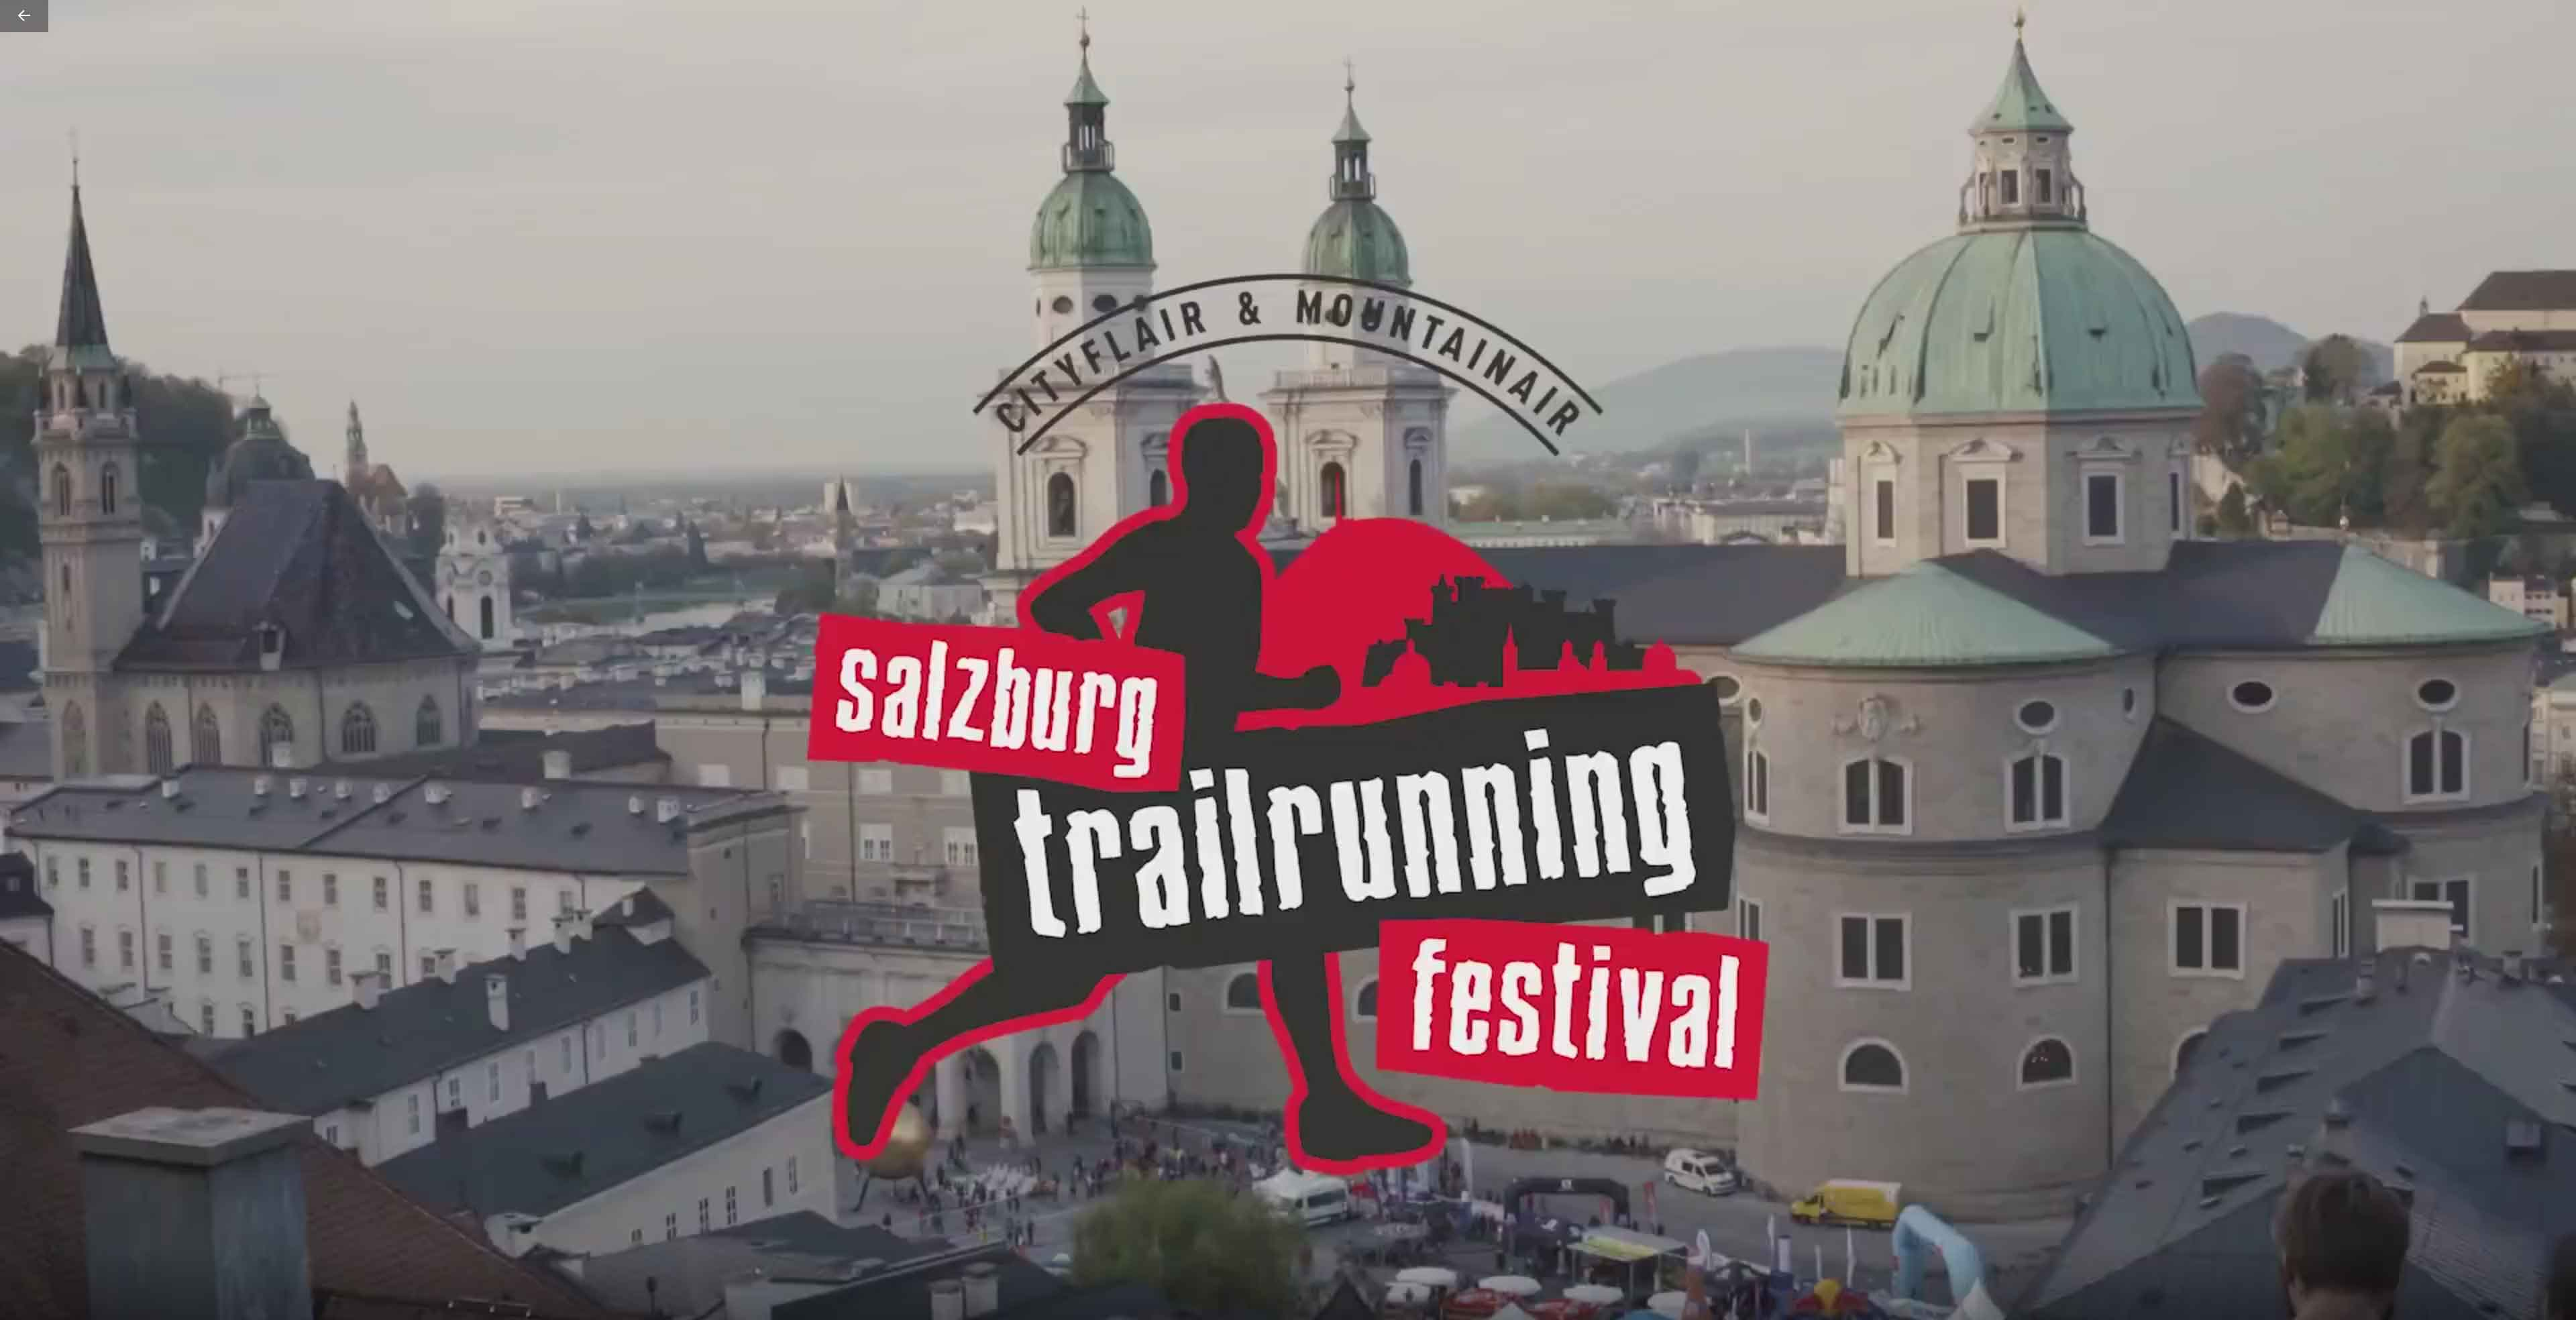 Trailrunning Festival Salzburg Video